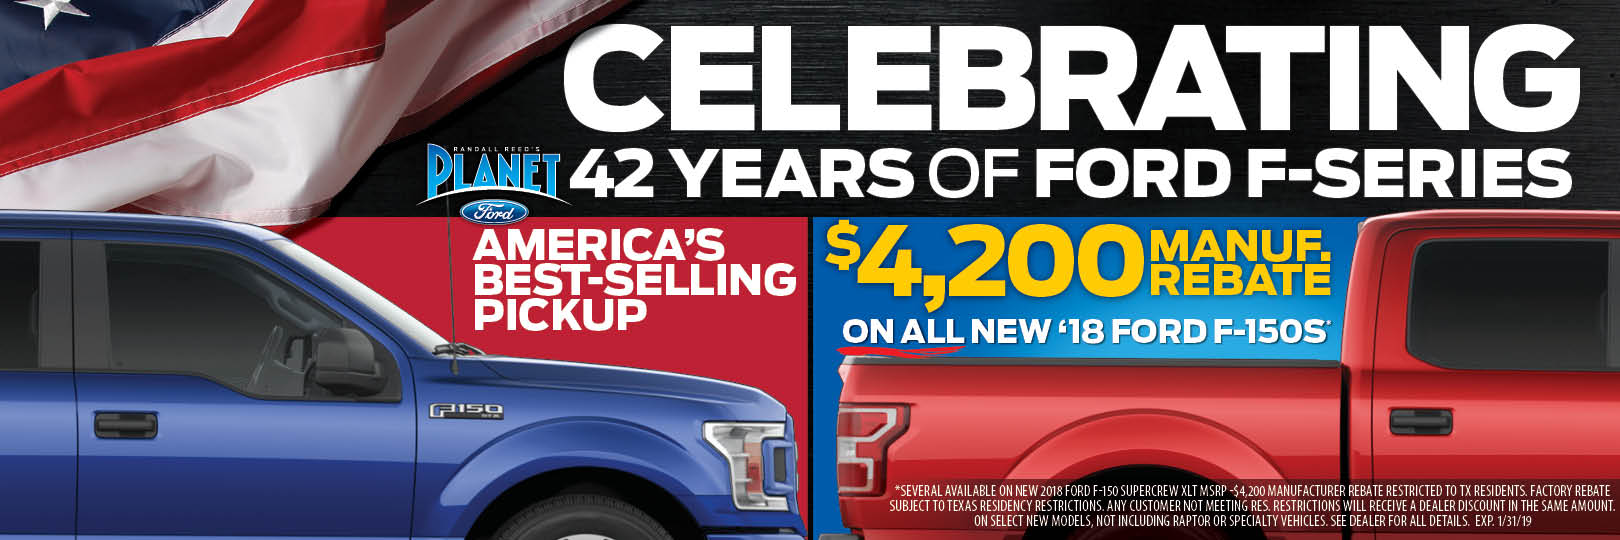 Celebrating 42 Years of F-Series